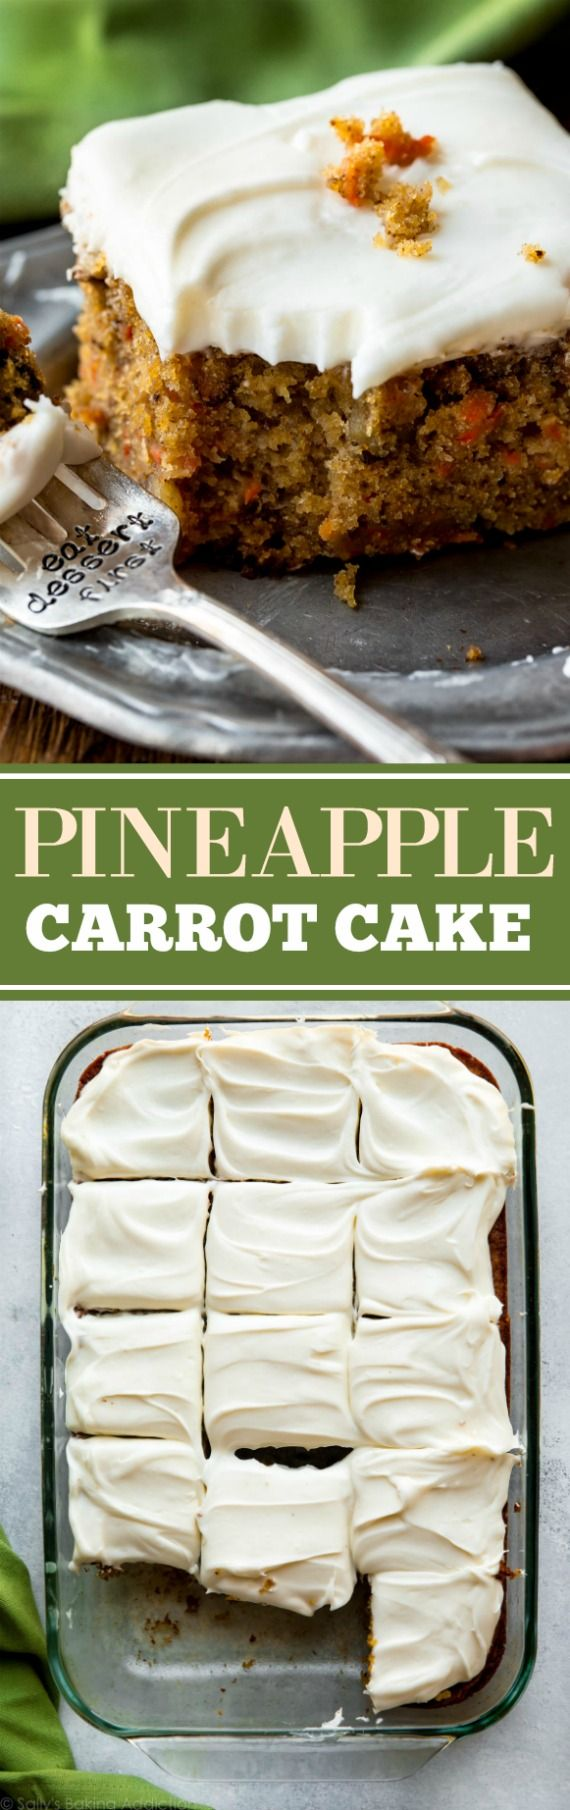 the carrot cake dessert Check out seven tasty carrot dessert recipes - including a few carrot cake recipes - at womansdaycom.